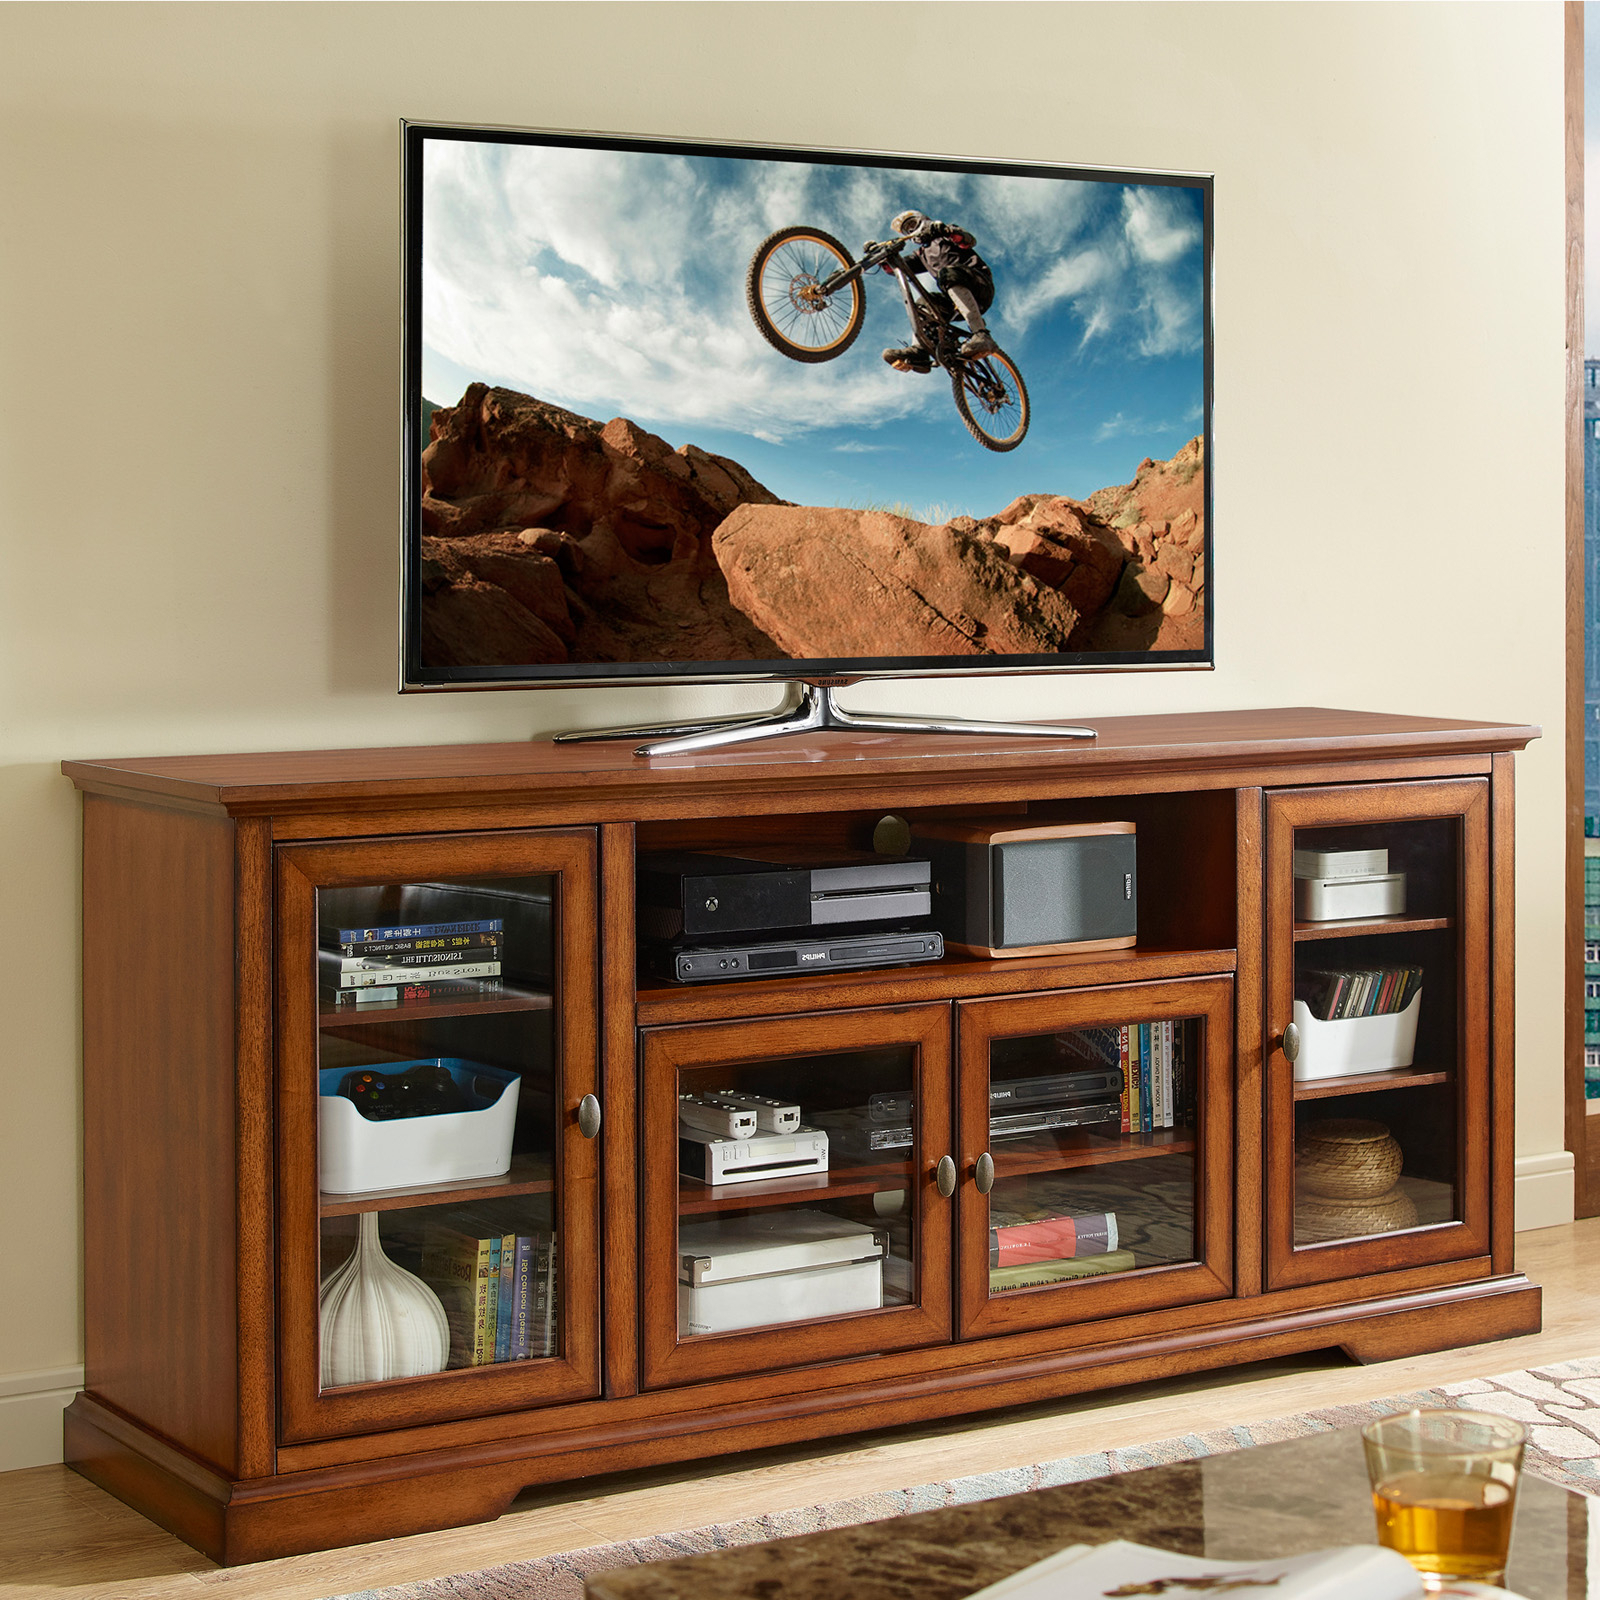 Walker Edison Style Wood Tv Stand – Tv Stands At Hayneedle With Regard To Walker Edison Contemporary Tall Tv Stands (View 6 of 20)